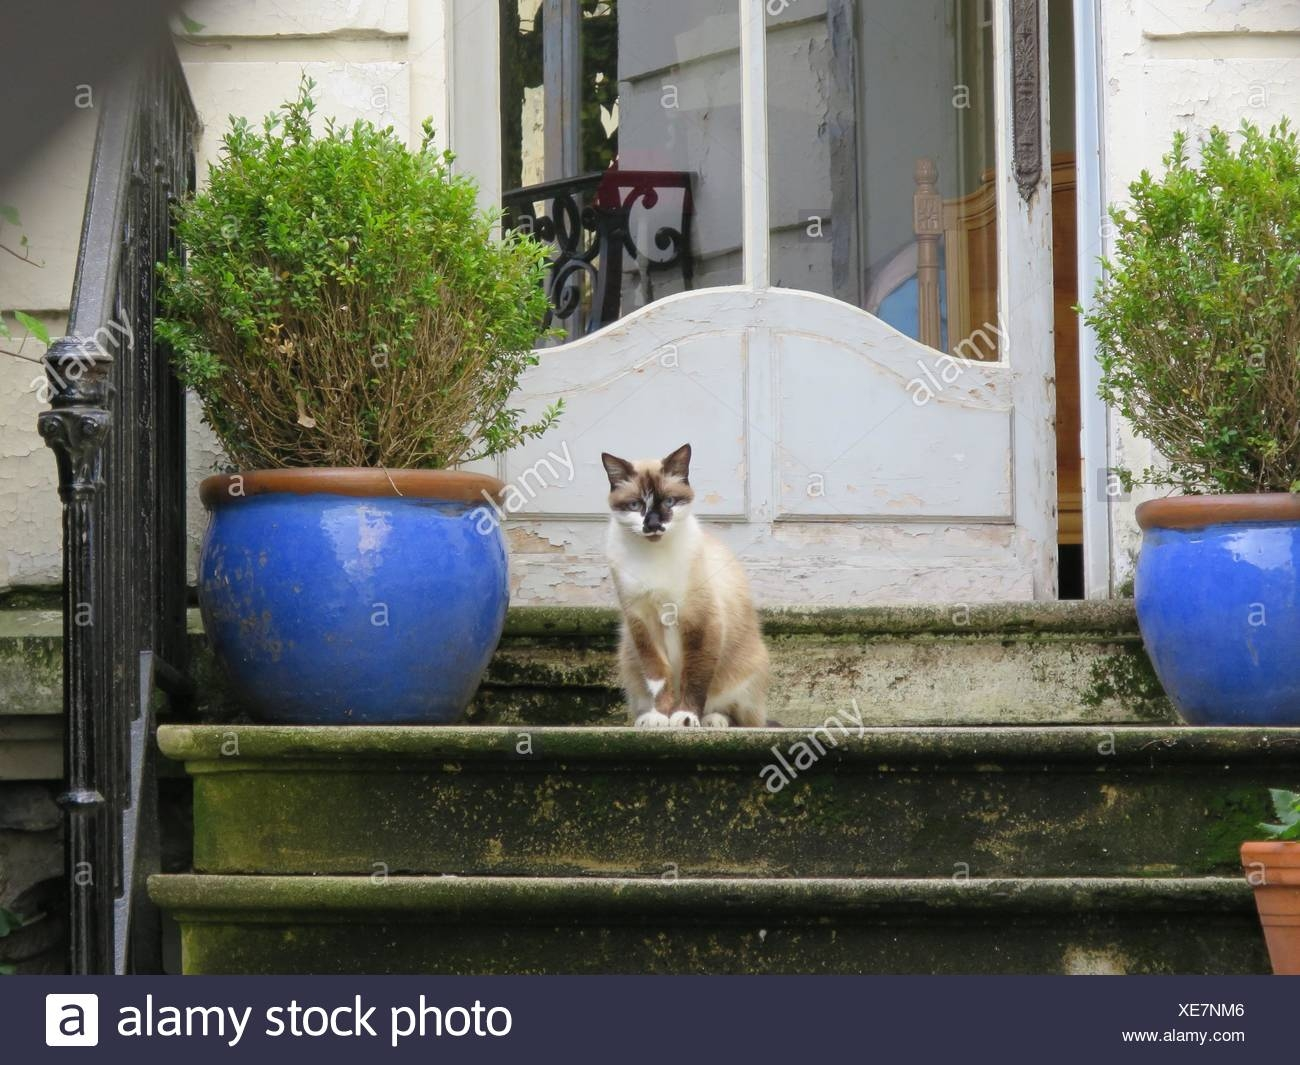 Cat Sitting On Steps Outside House Stock Photo Alamy   Outside Steps For House   Modern   Fancy   House Construction   Makeover   Small House